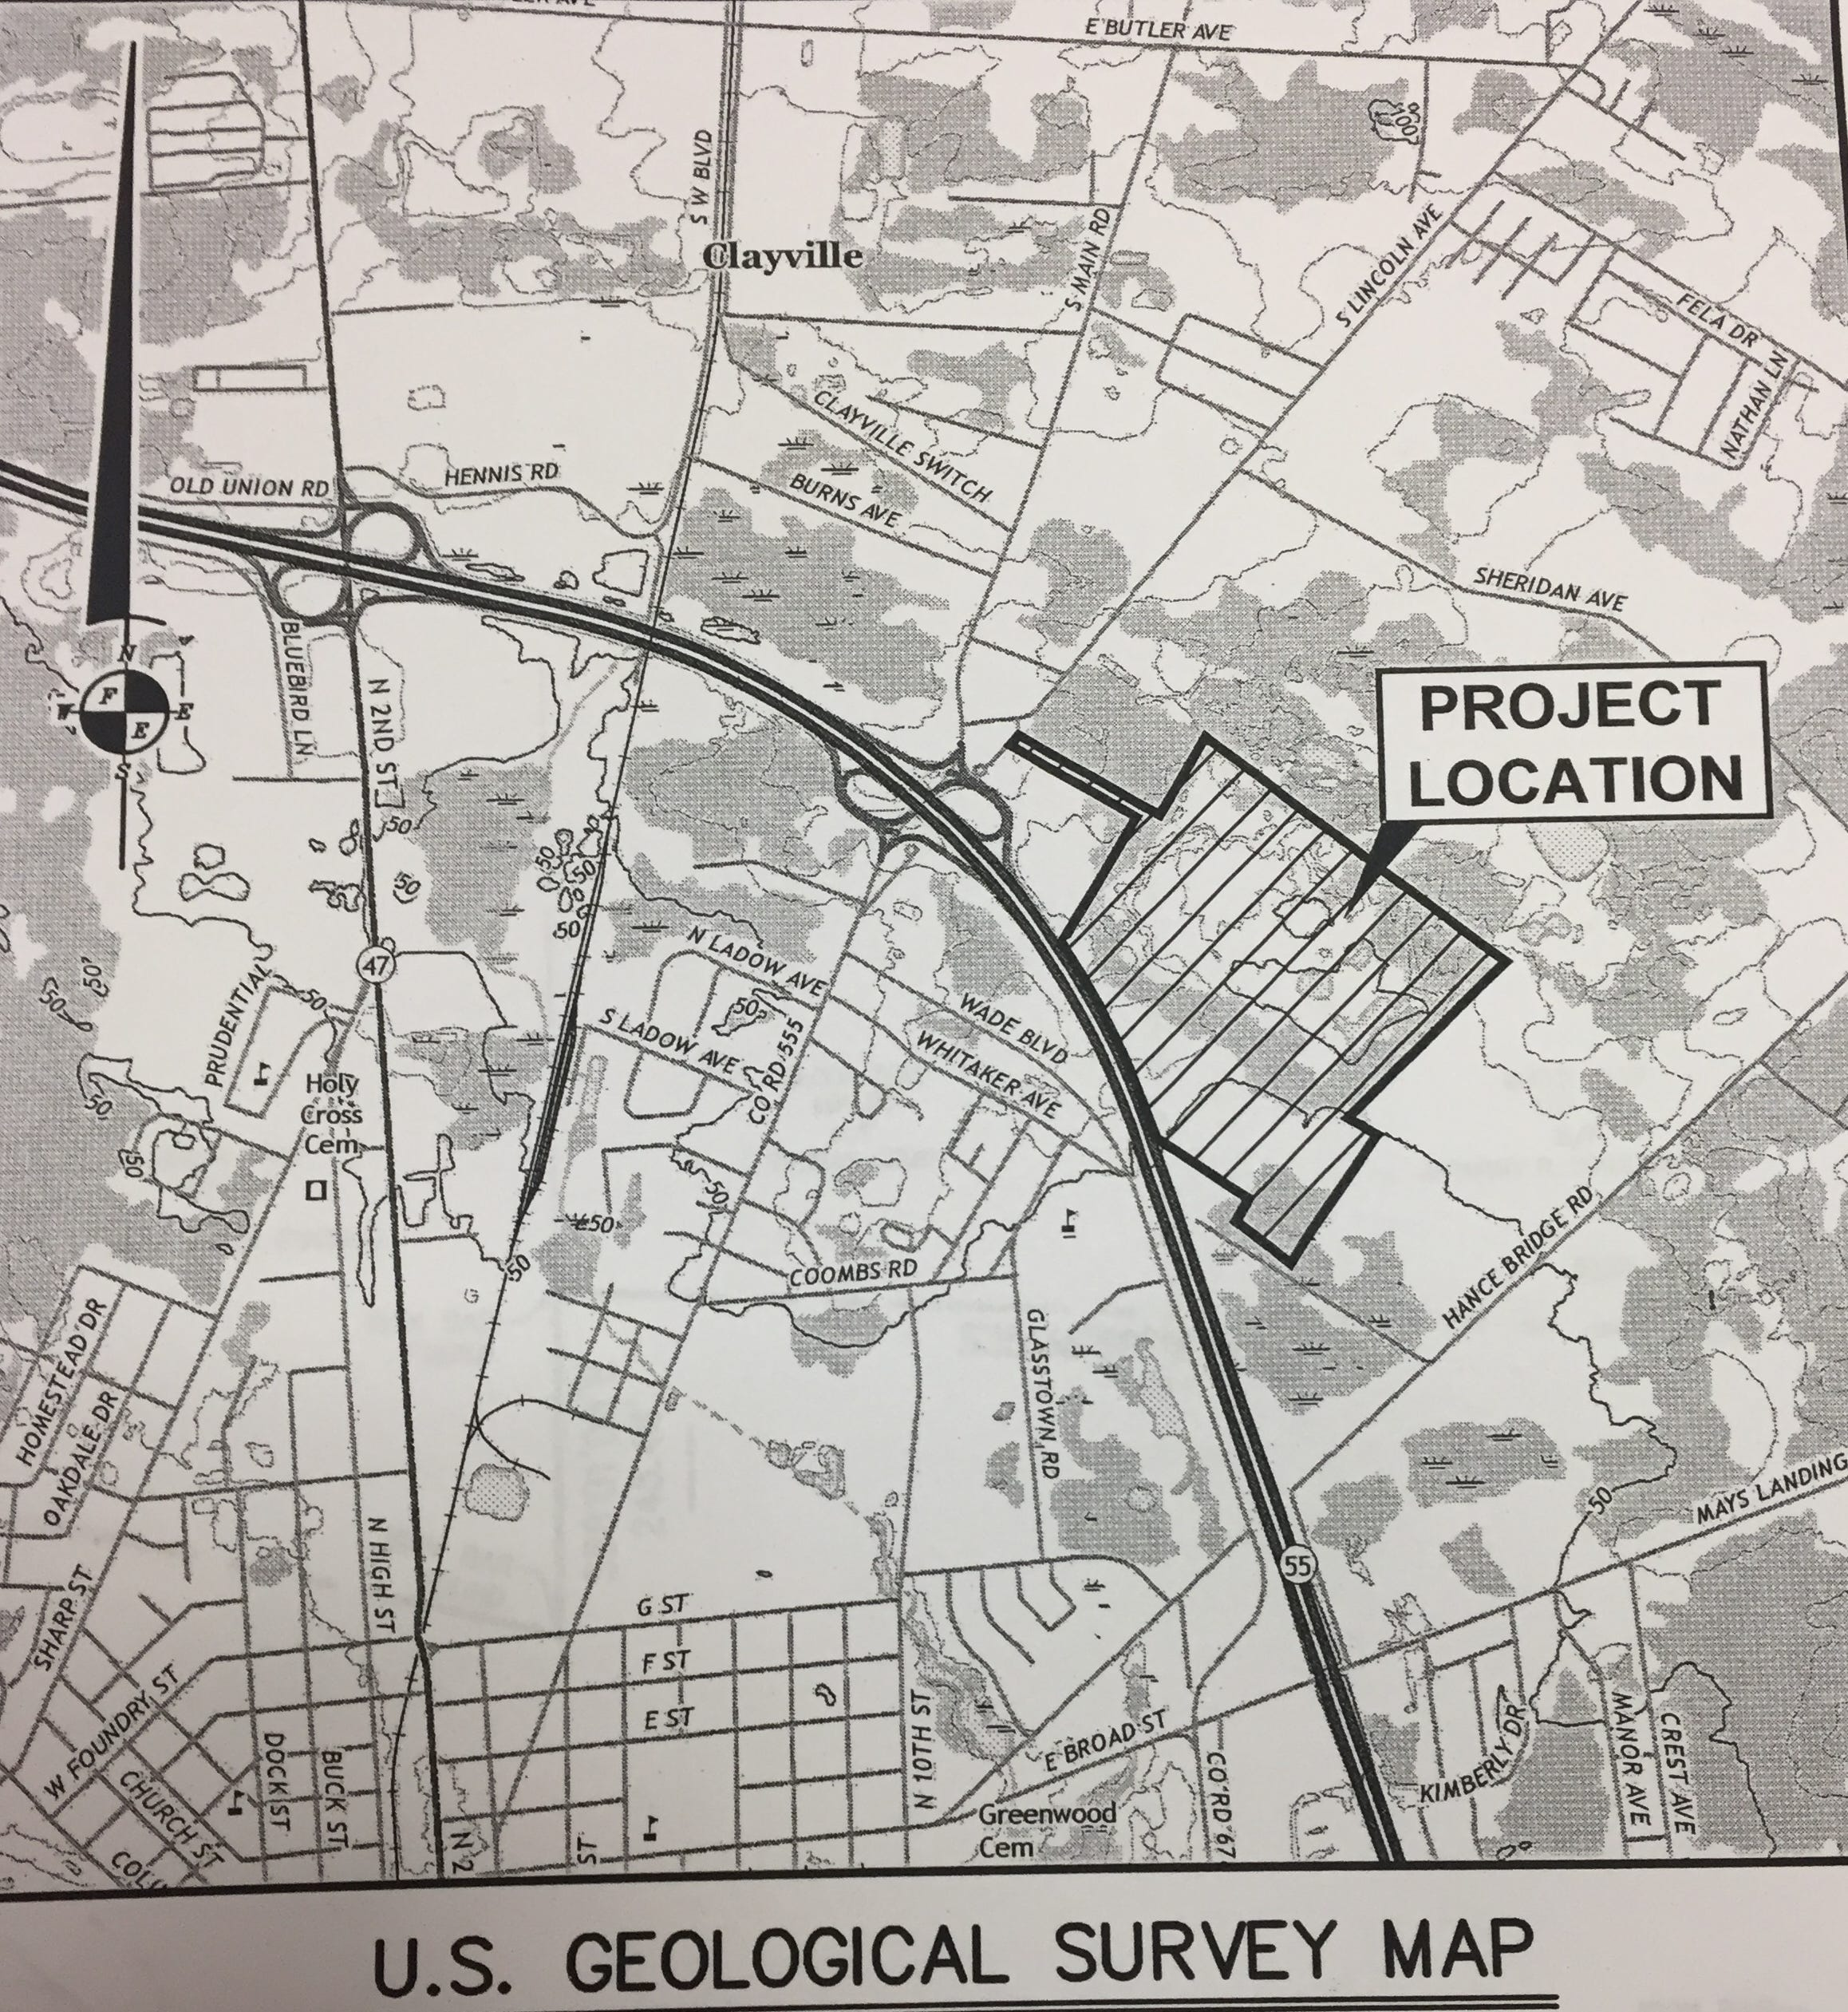 A U.S. Geologic Survey Map shows the site of a now-approved industrial park proposed by Northeast Precast off South Lincoln Avenue in Vineland.